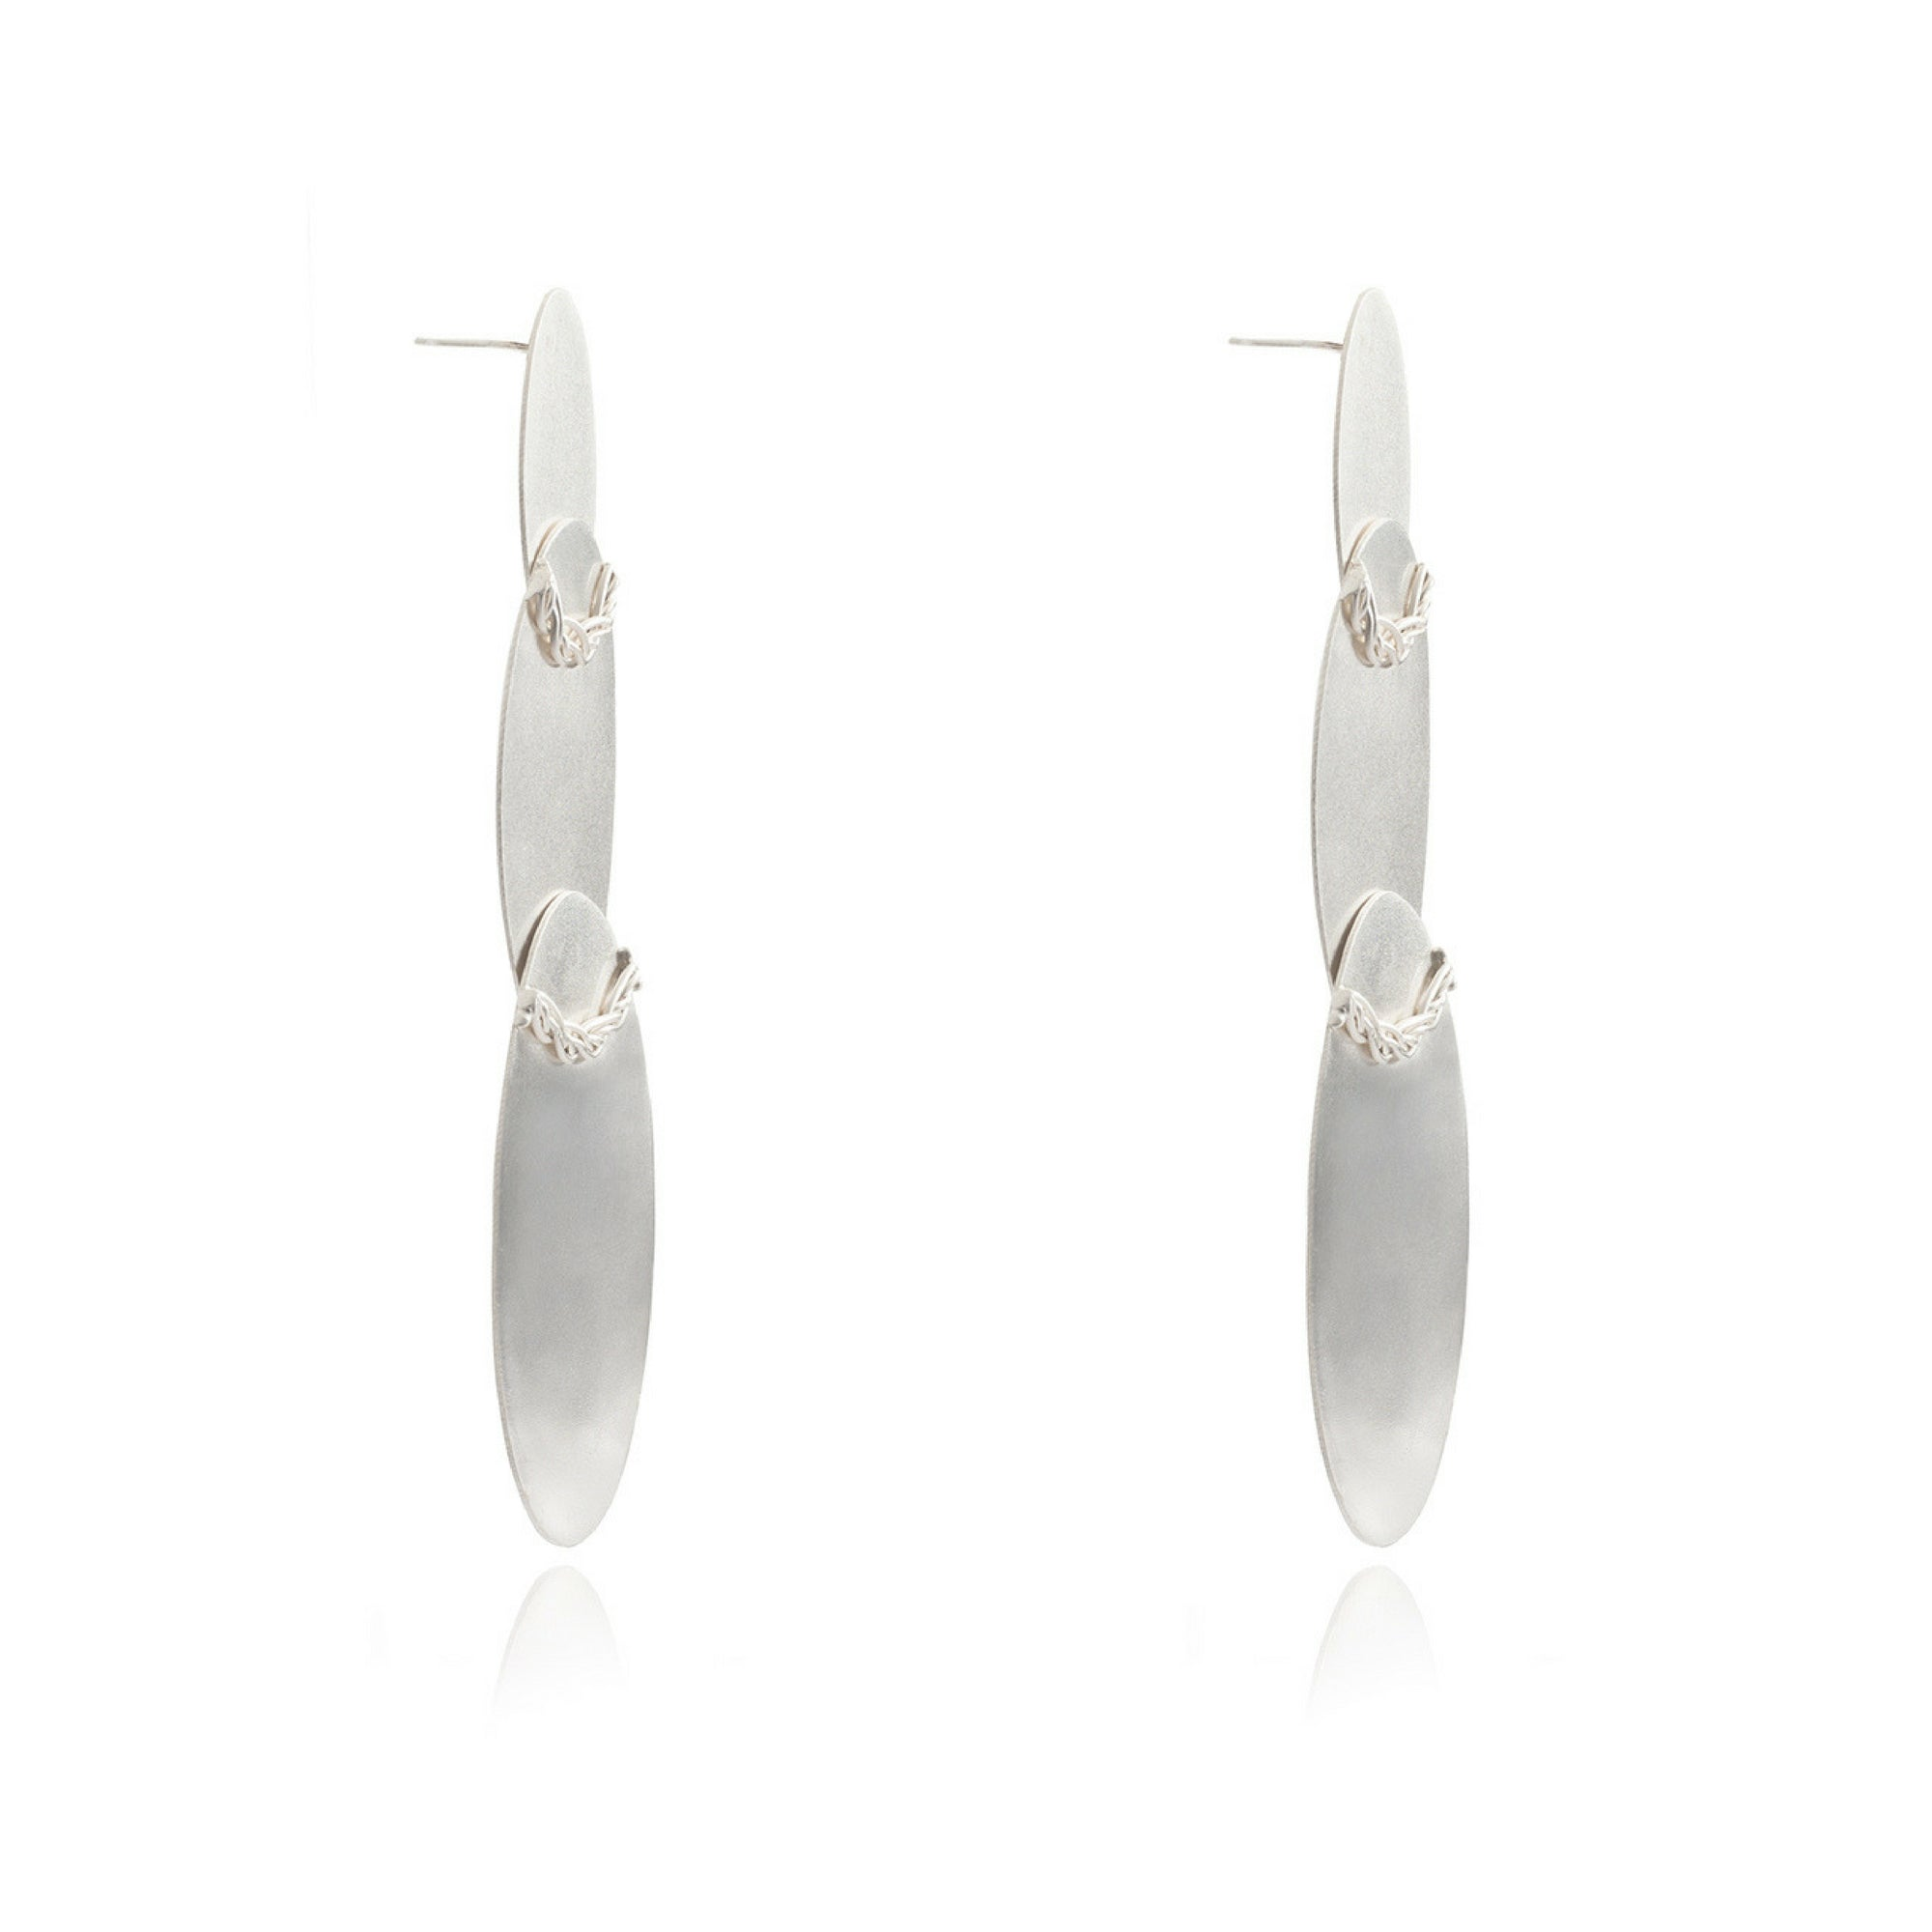 Liza Echeverry Jewelry Colombia Three Oval Earrings White Gold